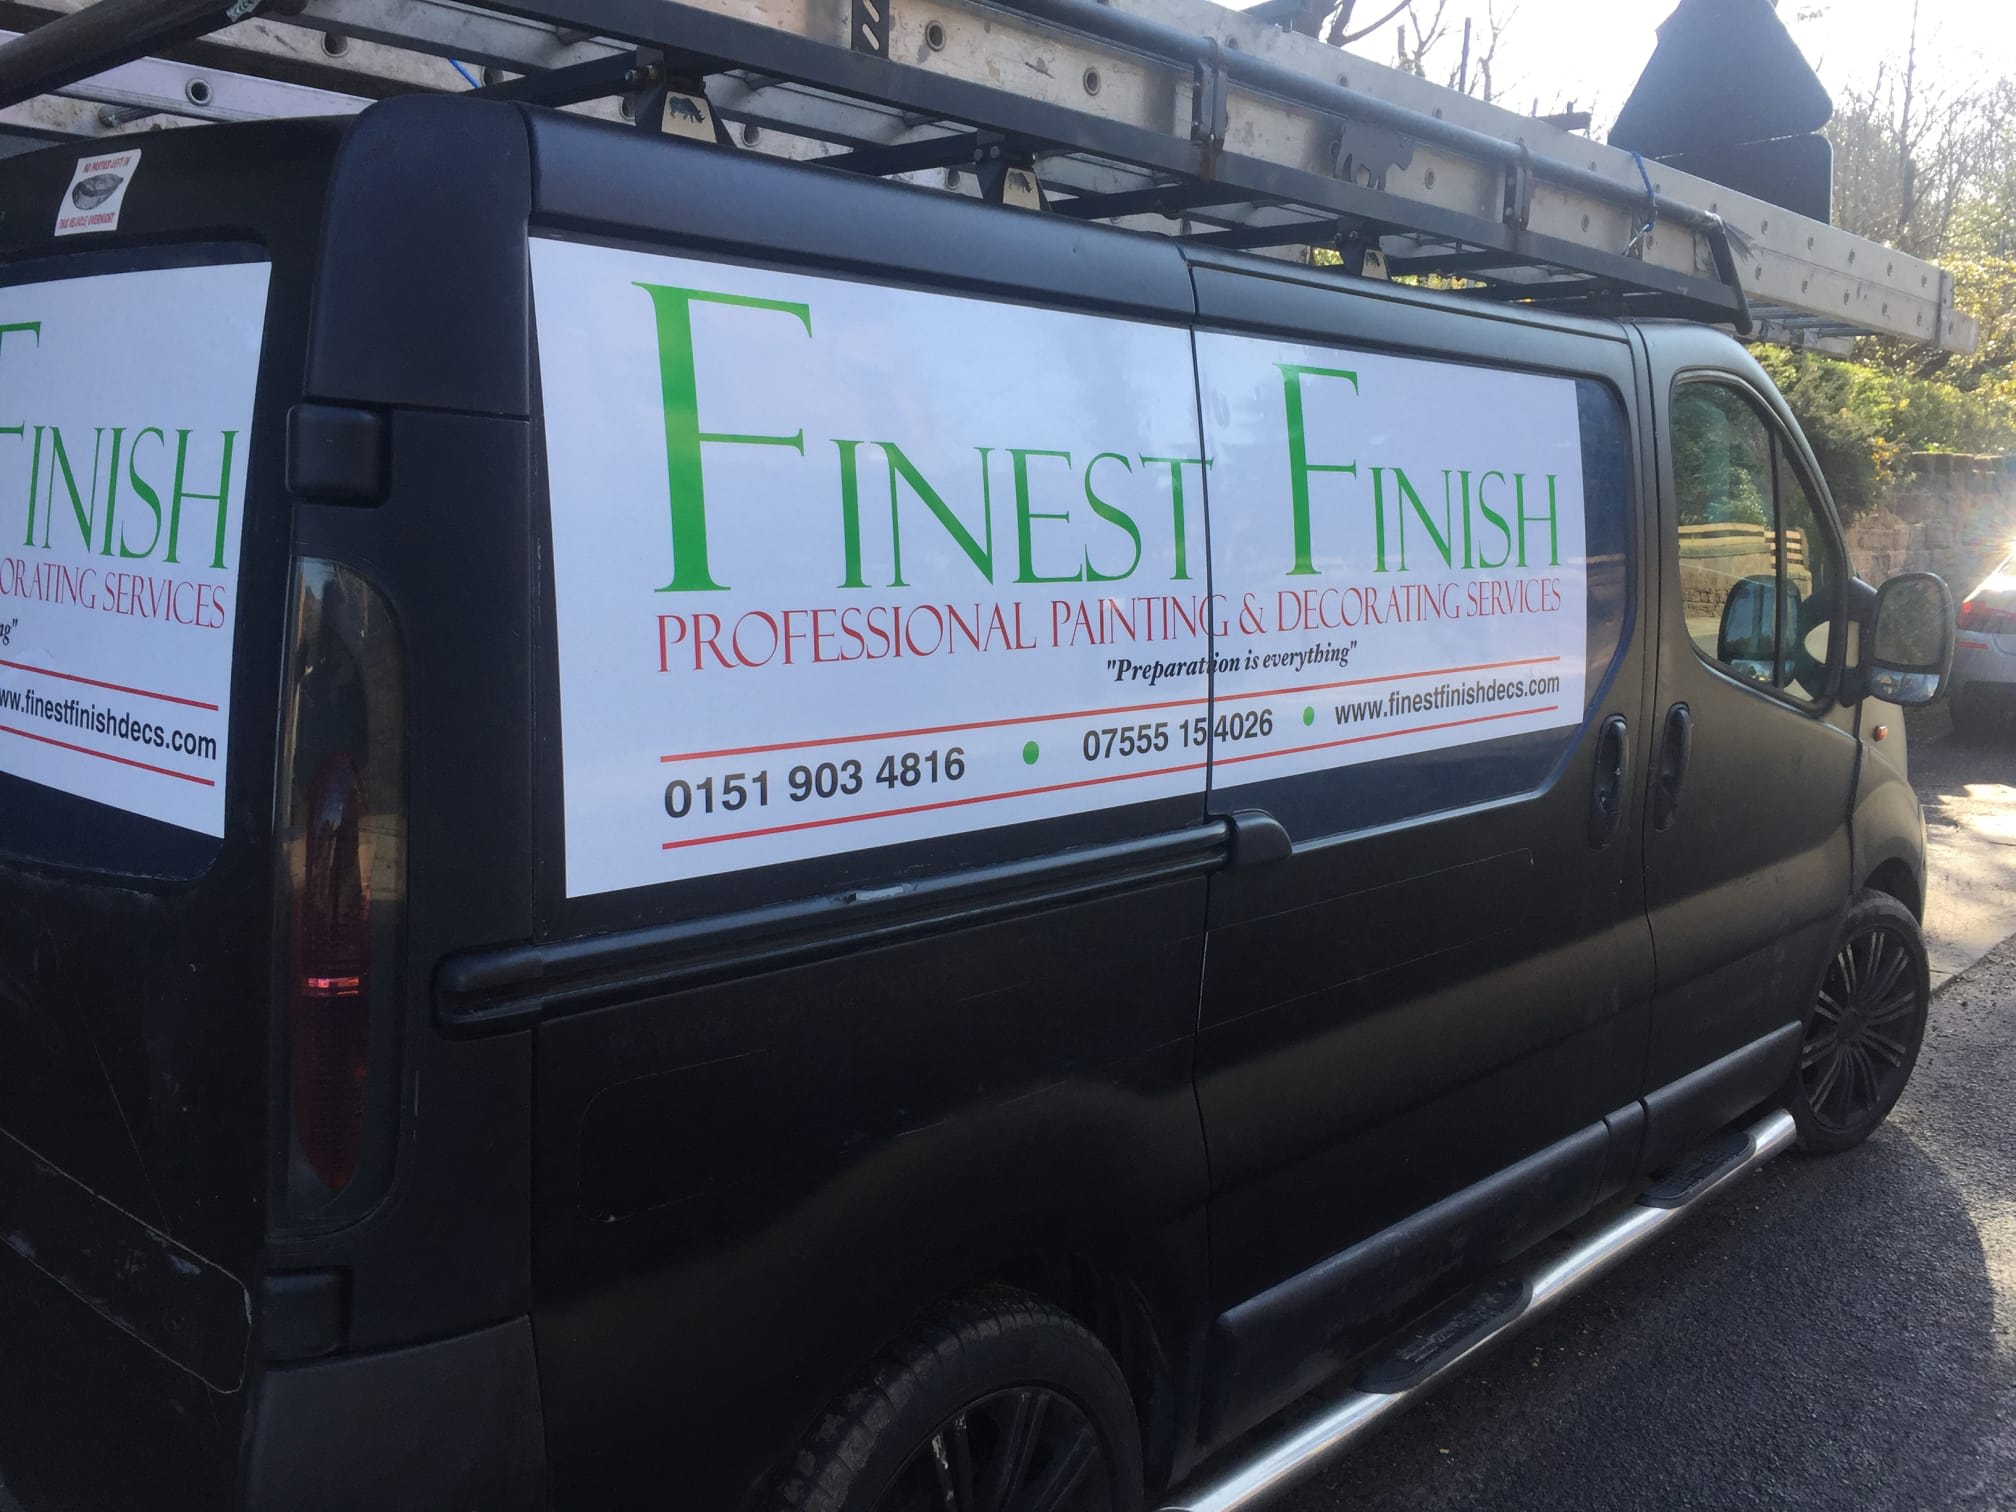 Finest Finish Professional Painting & Decorating | 26 Wentworth Avenue, Wallasey CH45 5ET | +44 7555 154026